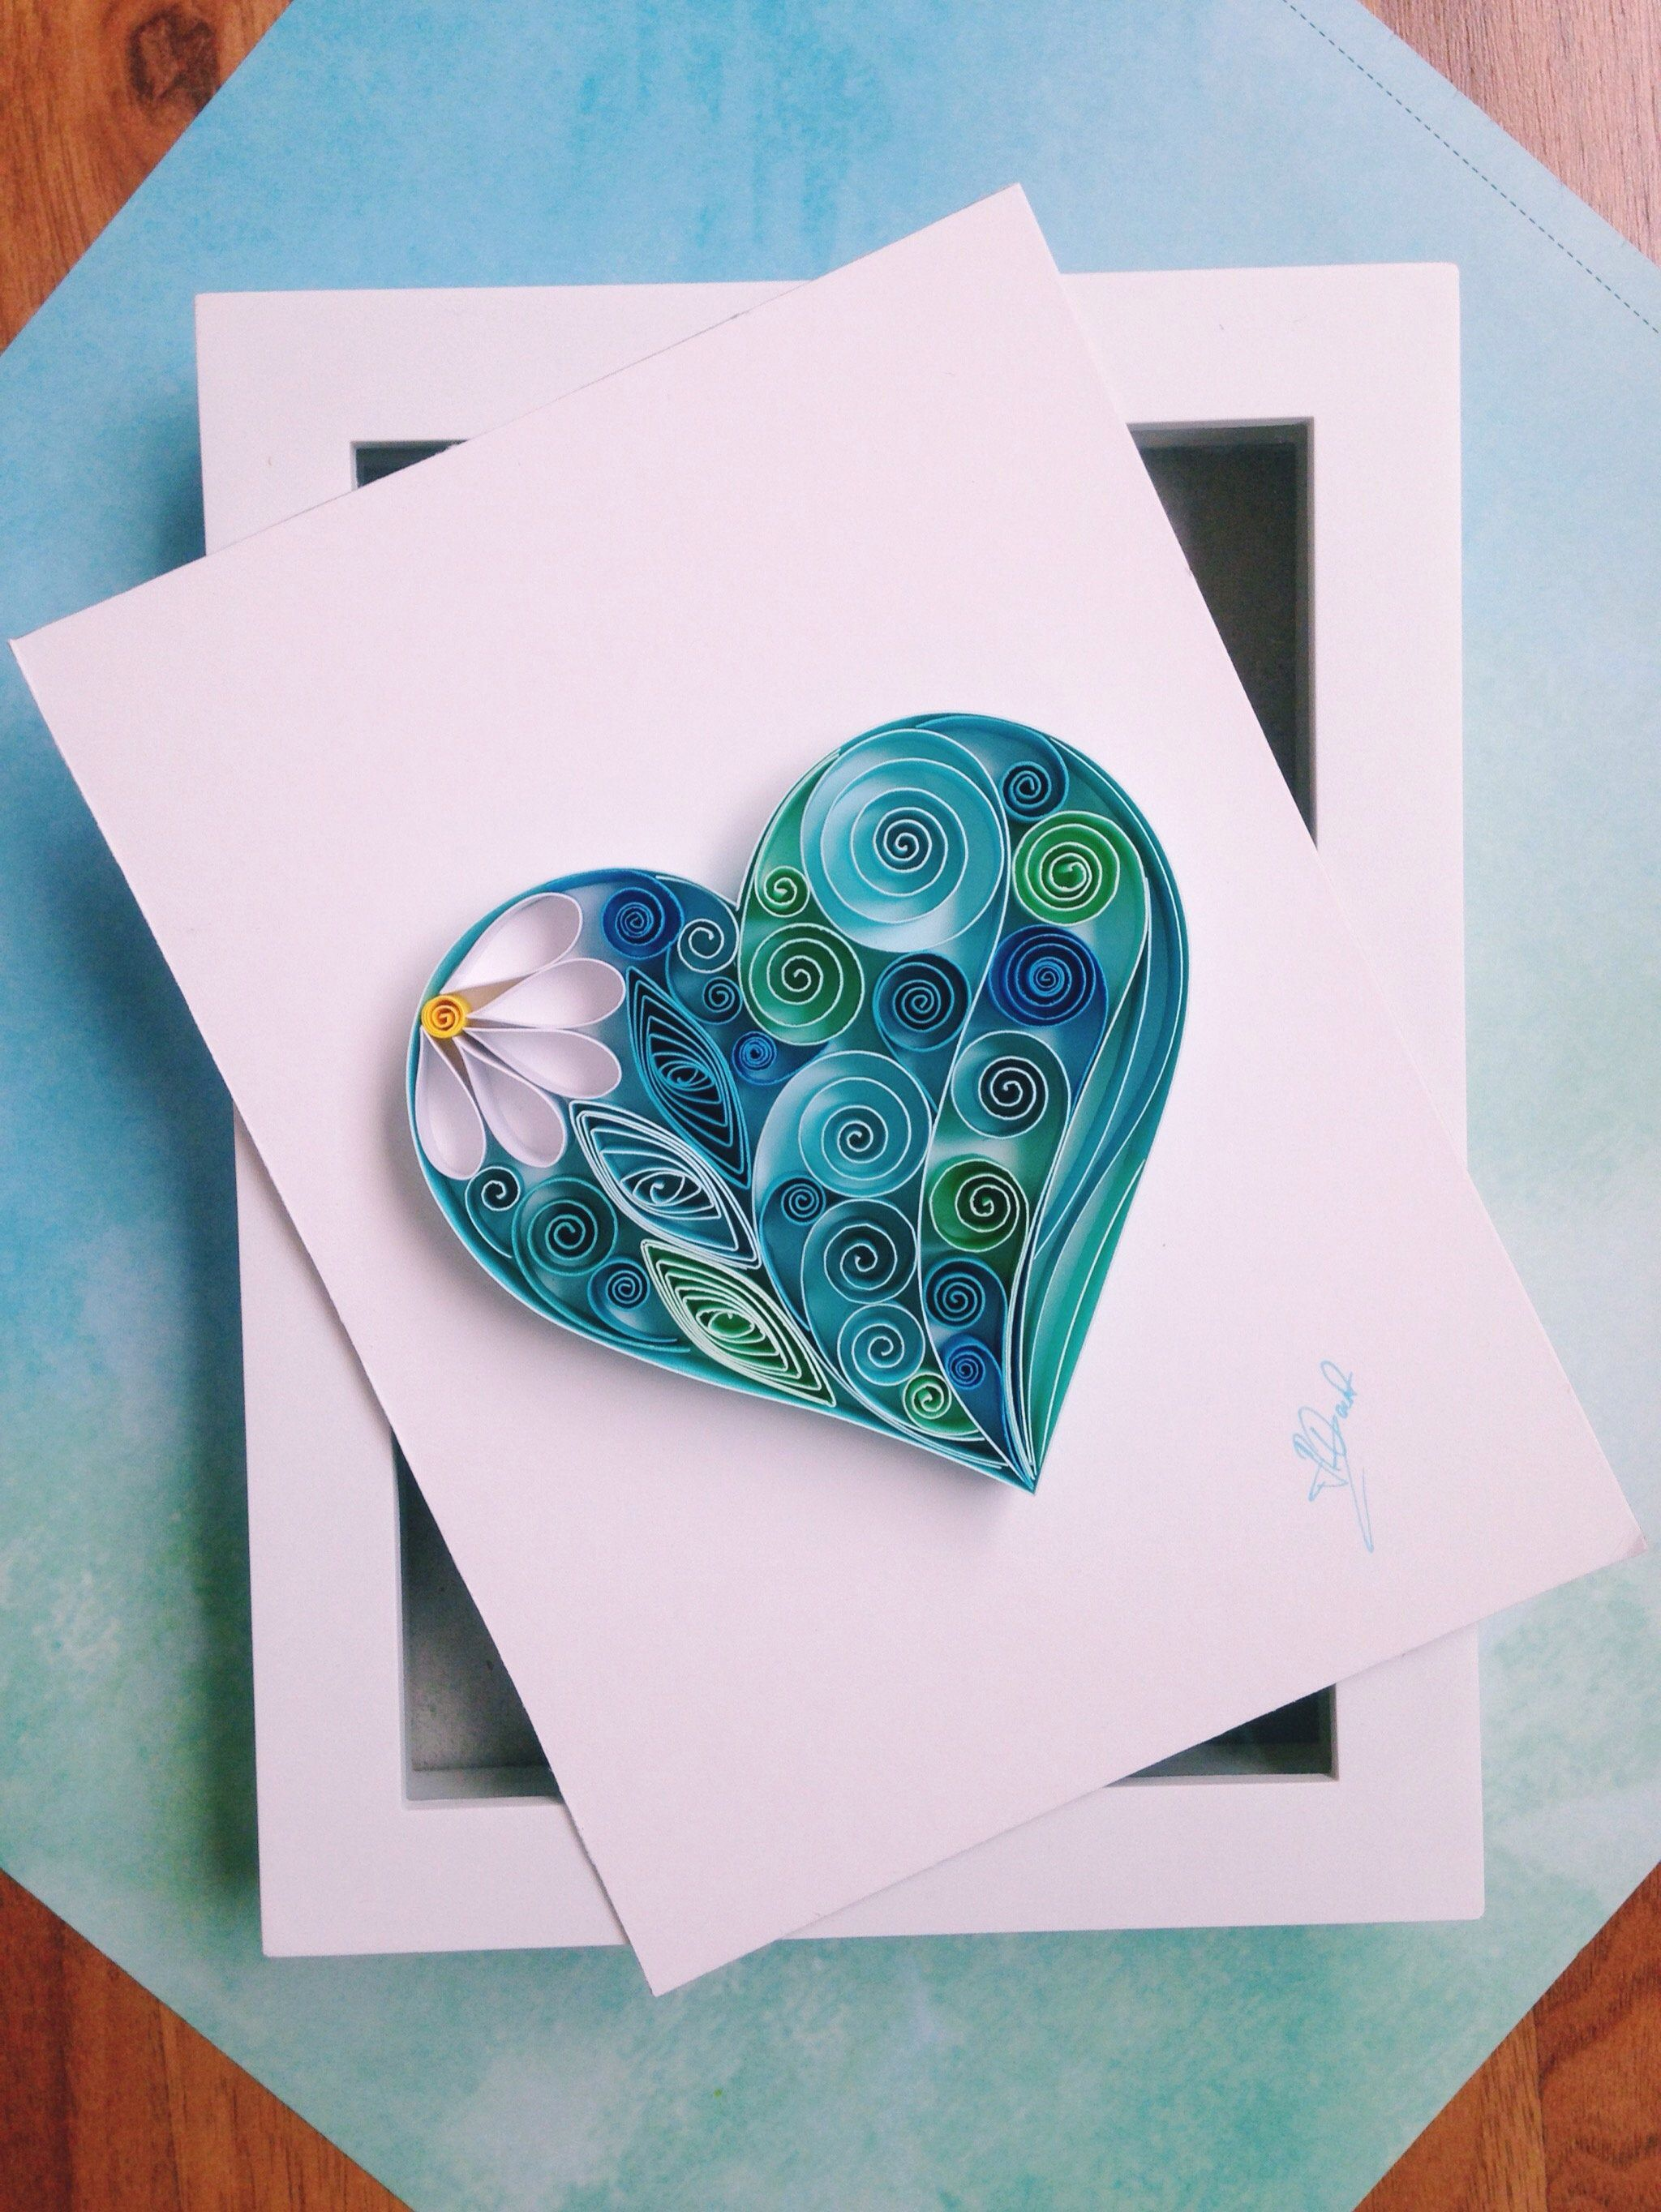 Quilled Paper Art 'Mini Tiny Hearts'Unique | Etsy